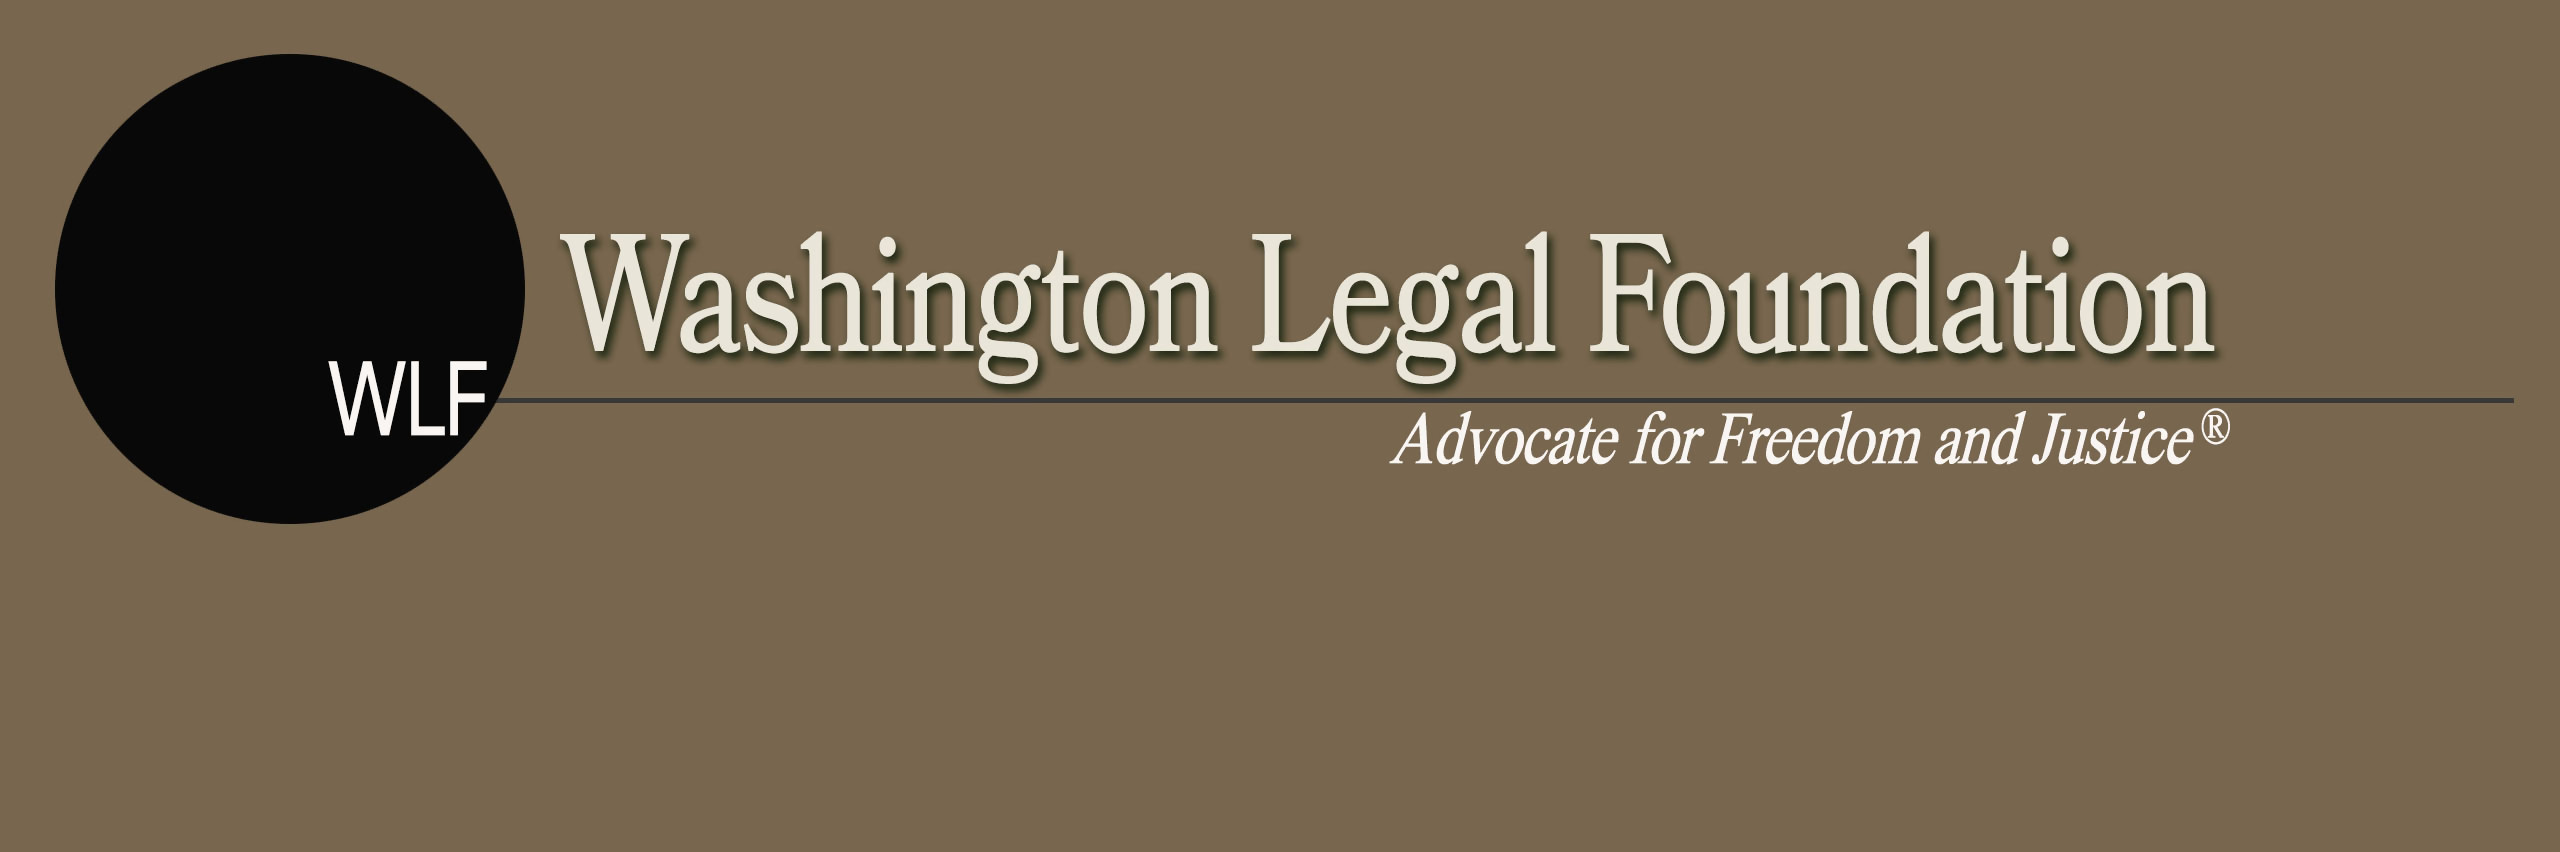 Washington Legal Foundation